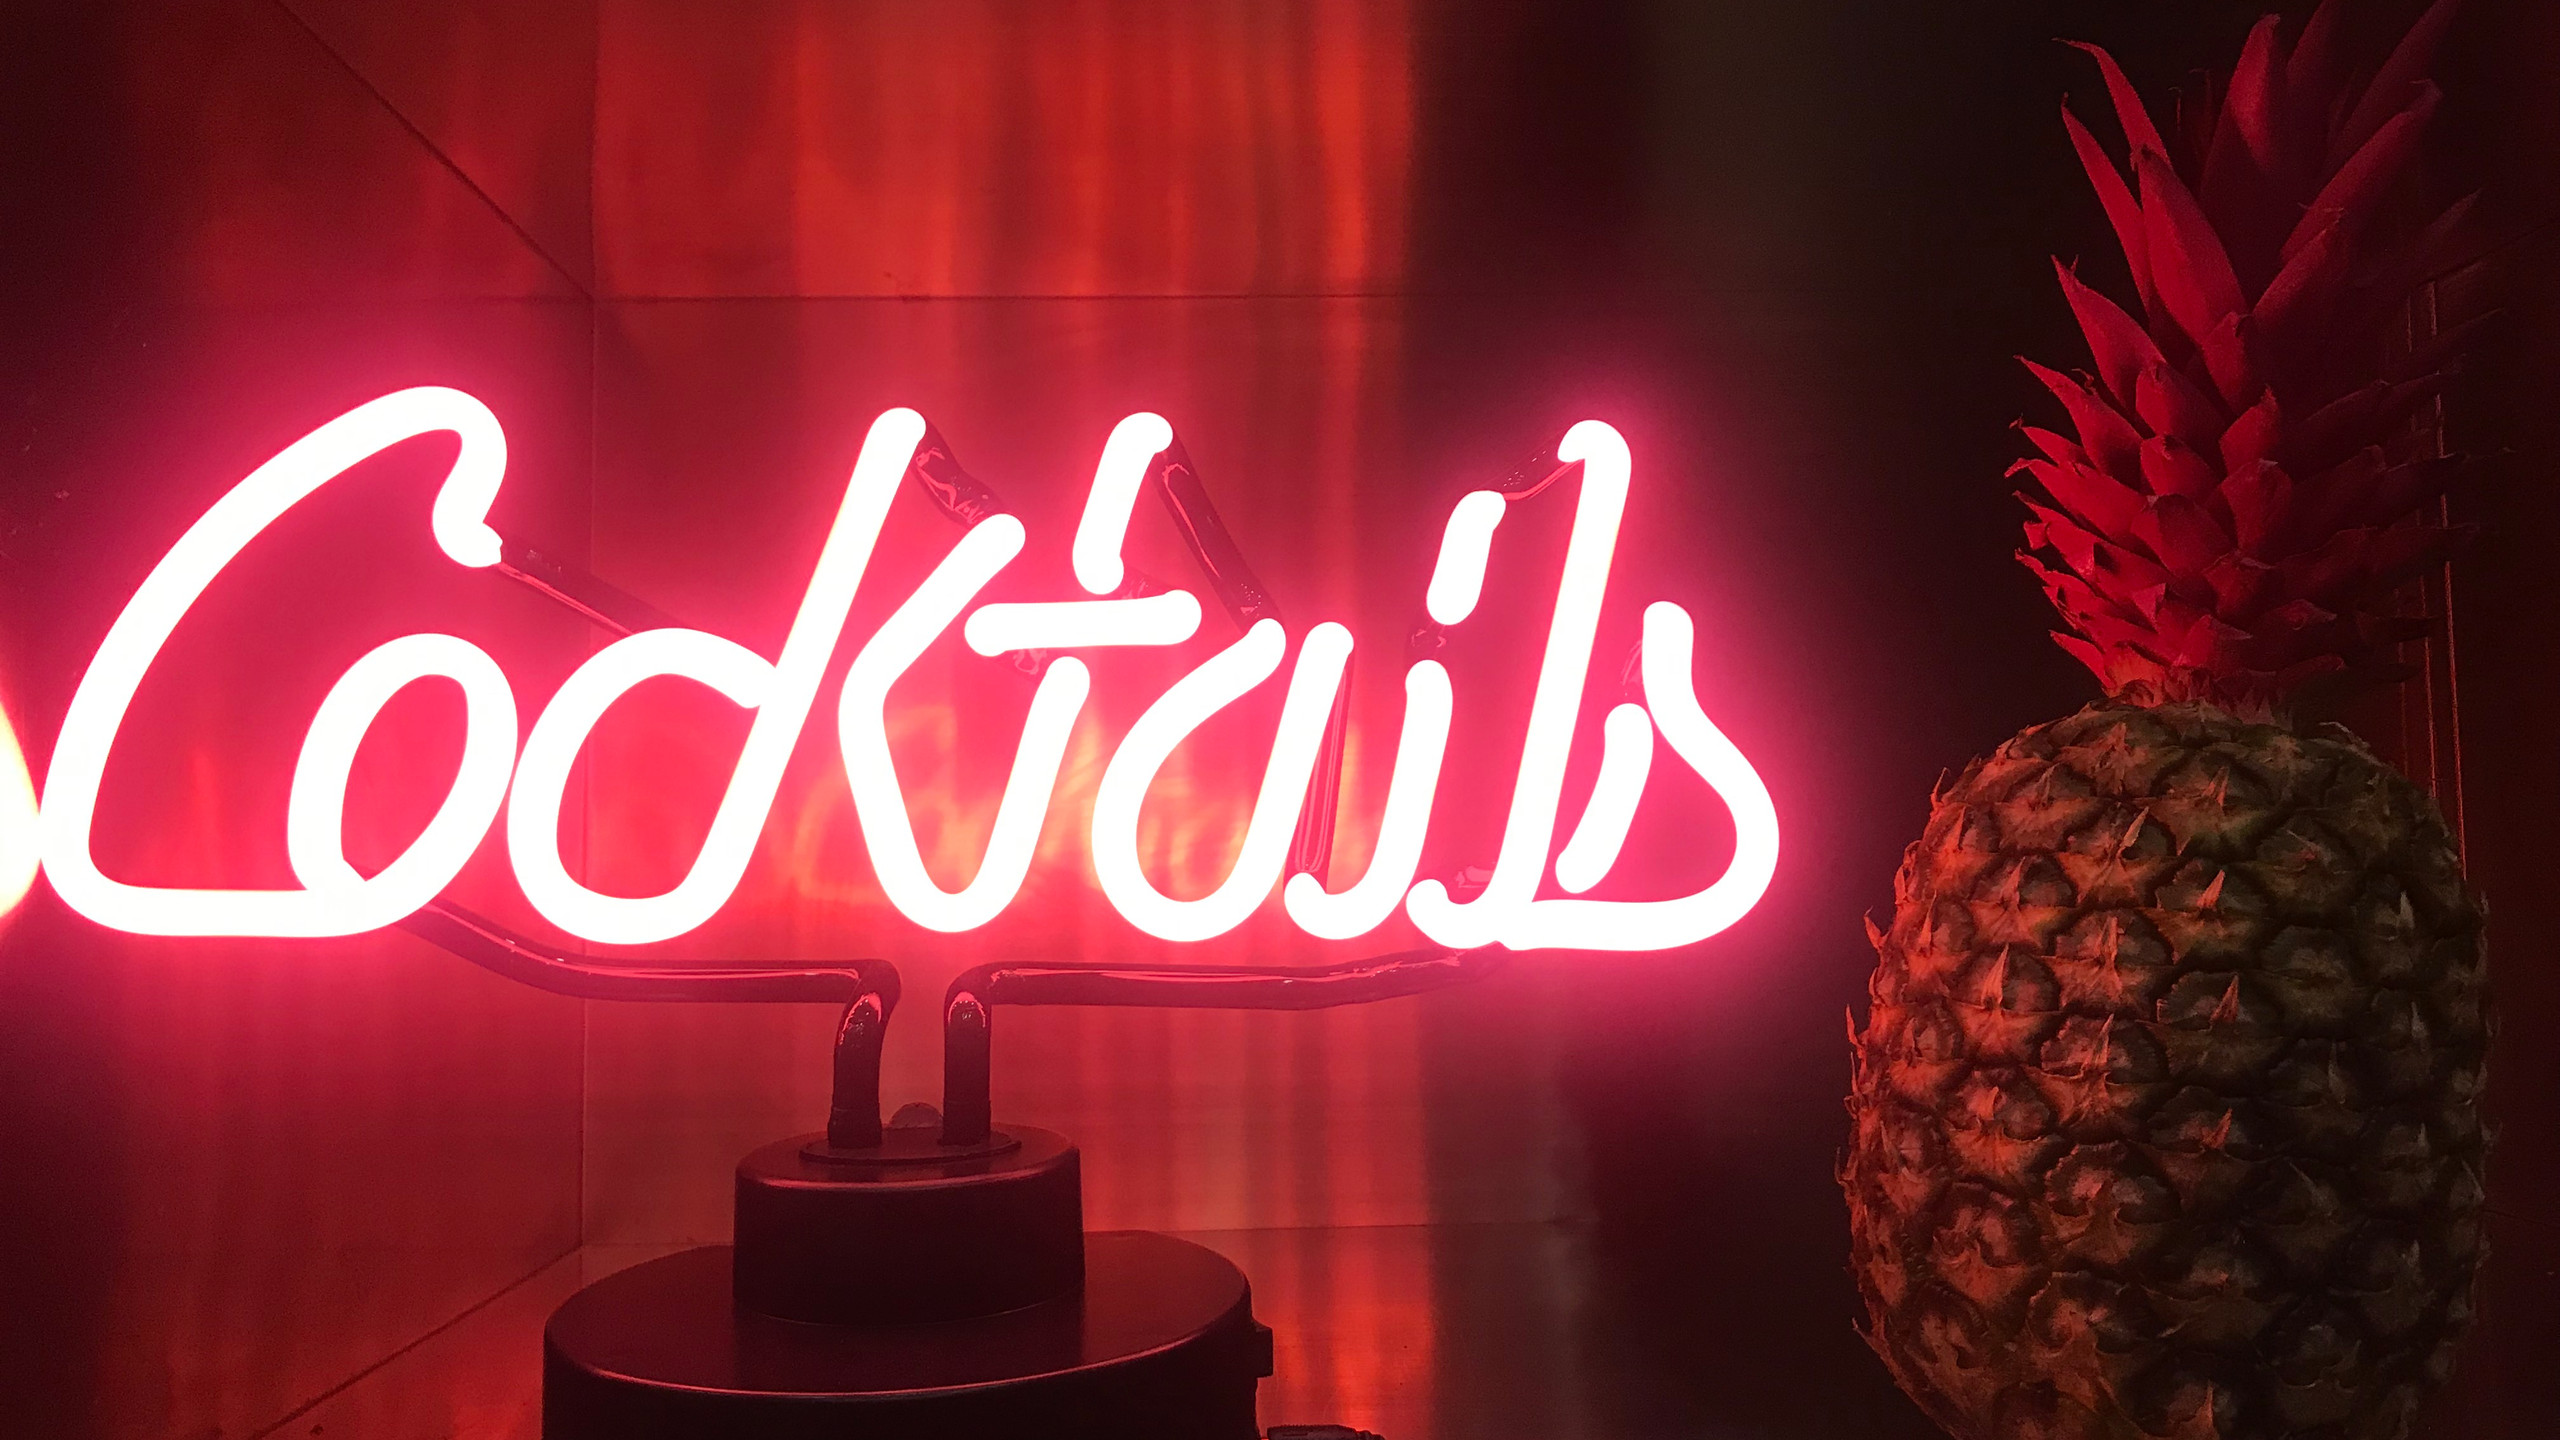 Neon Cocktails Signs